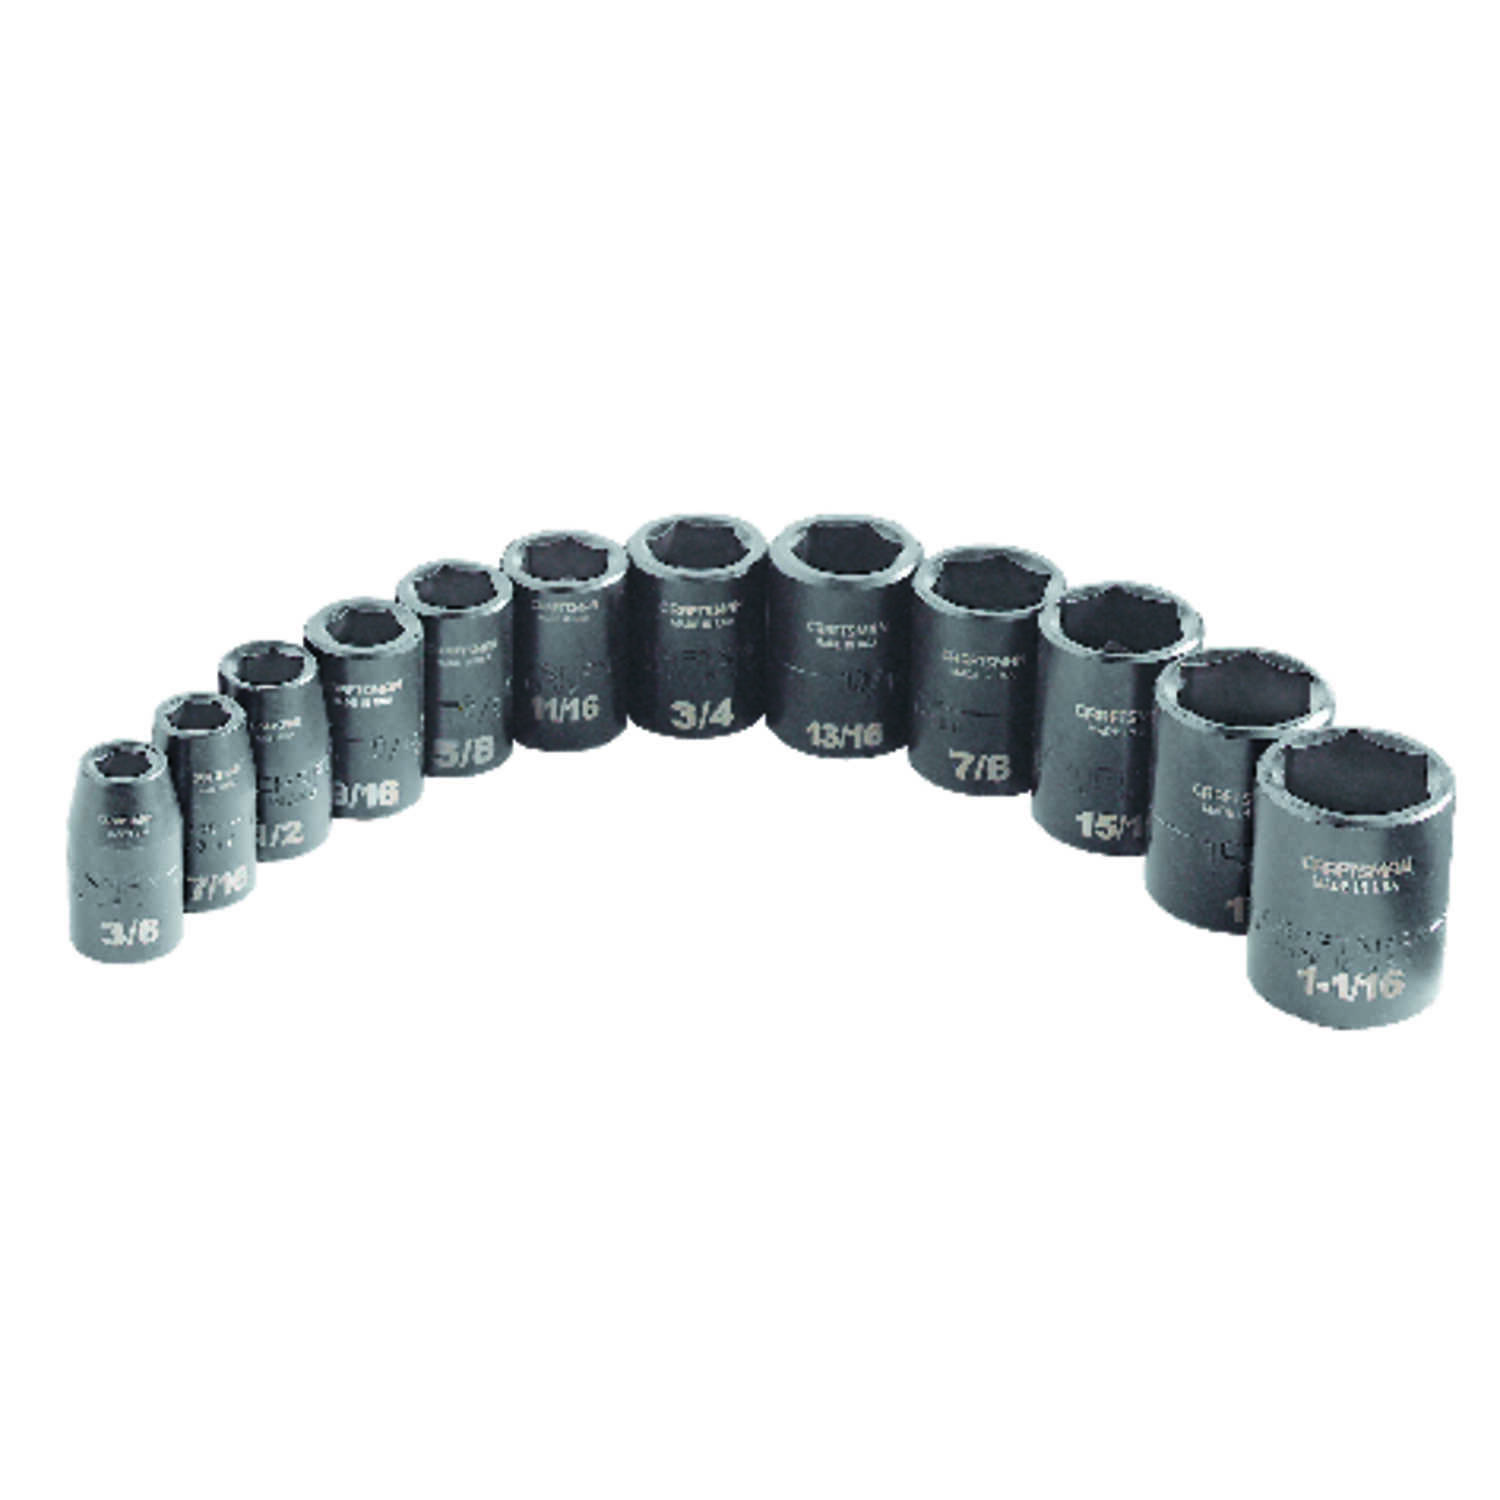 Craftsman  Easy-to-Read  1-1/16 in.  x 1/2 in. drive  SAE  6 Point Impact Socket Set  12 pc.